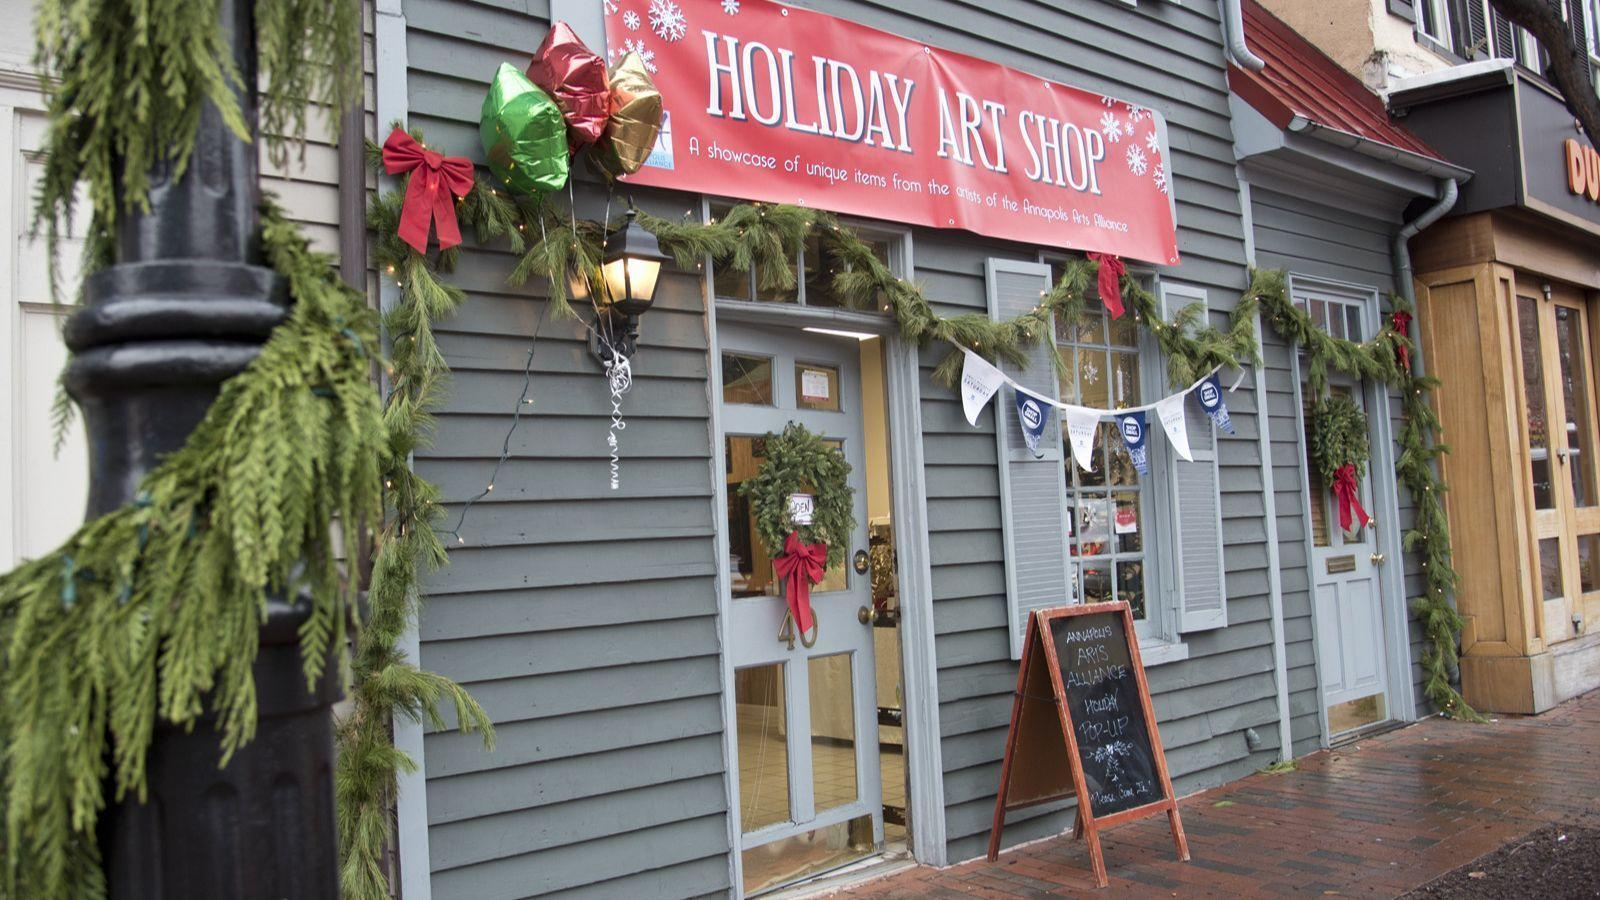 Top Billing: Holiday Pop-Up Shop, Maker's Market, crafting classes and more big events in Anne Arundel